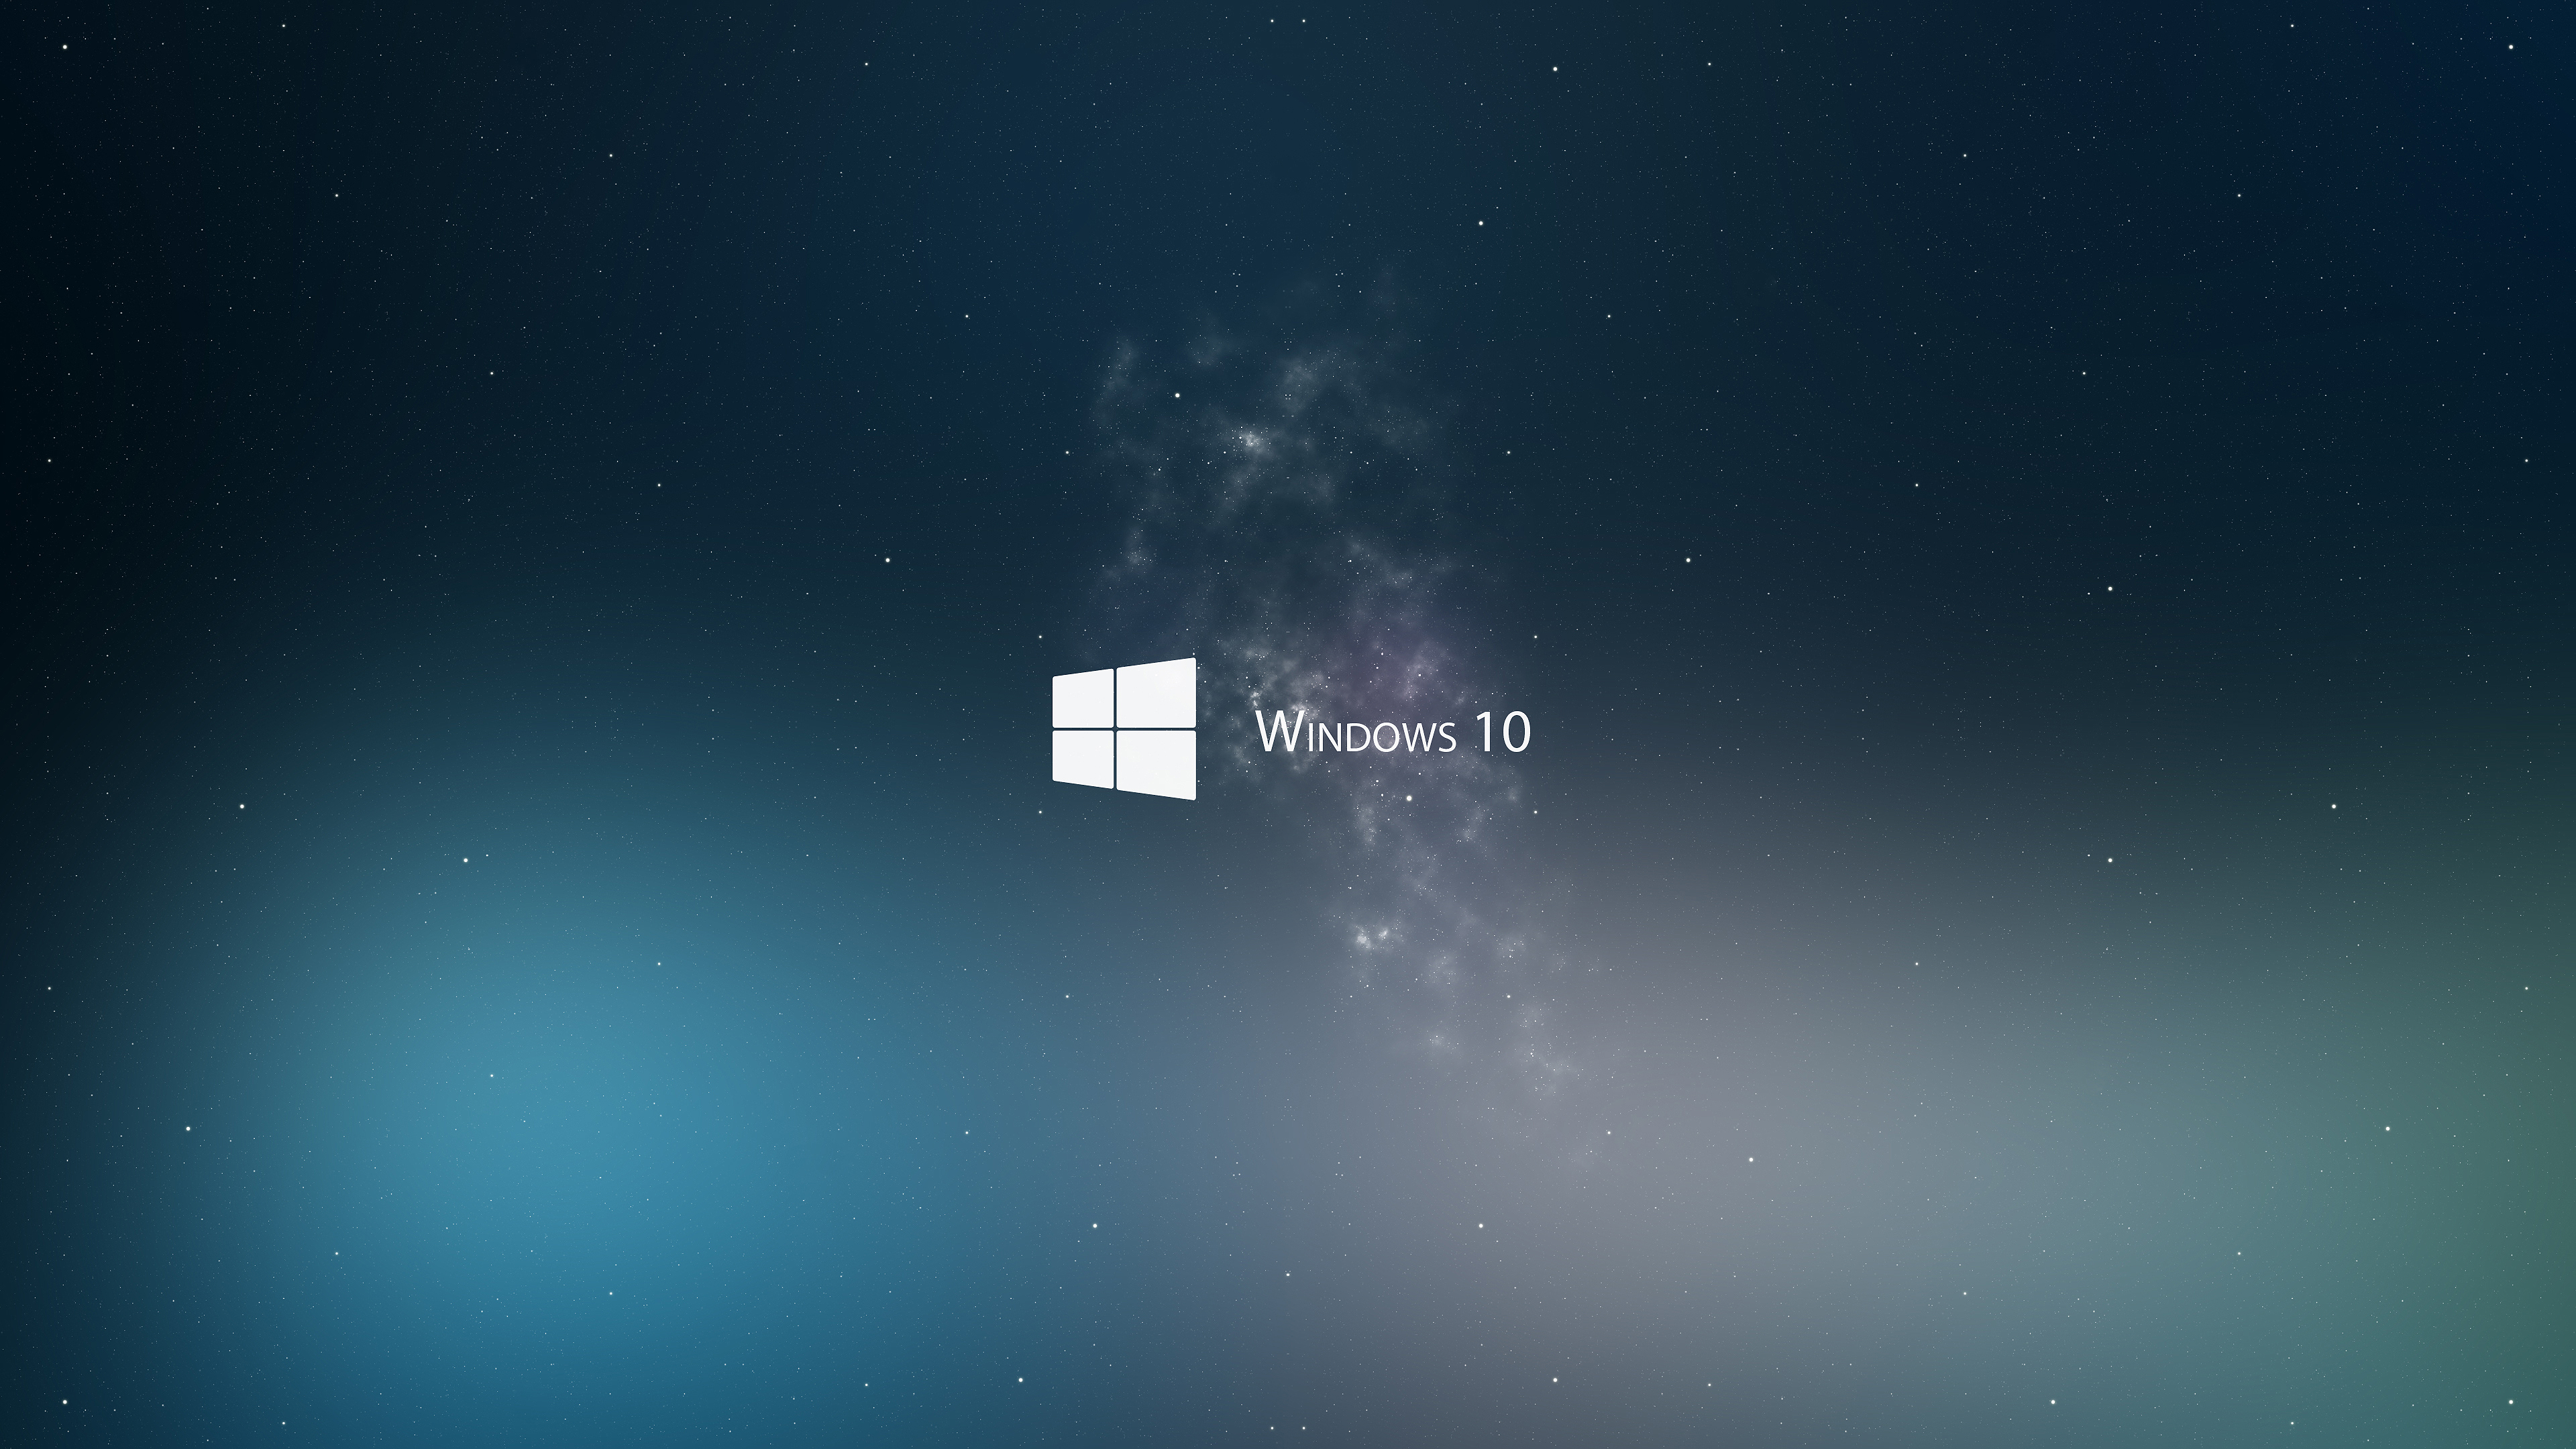 windows 10 hd desktop wallpaper